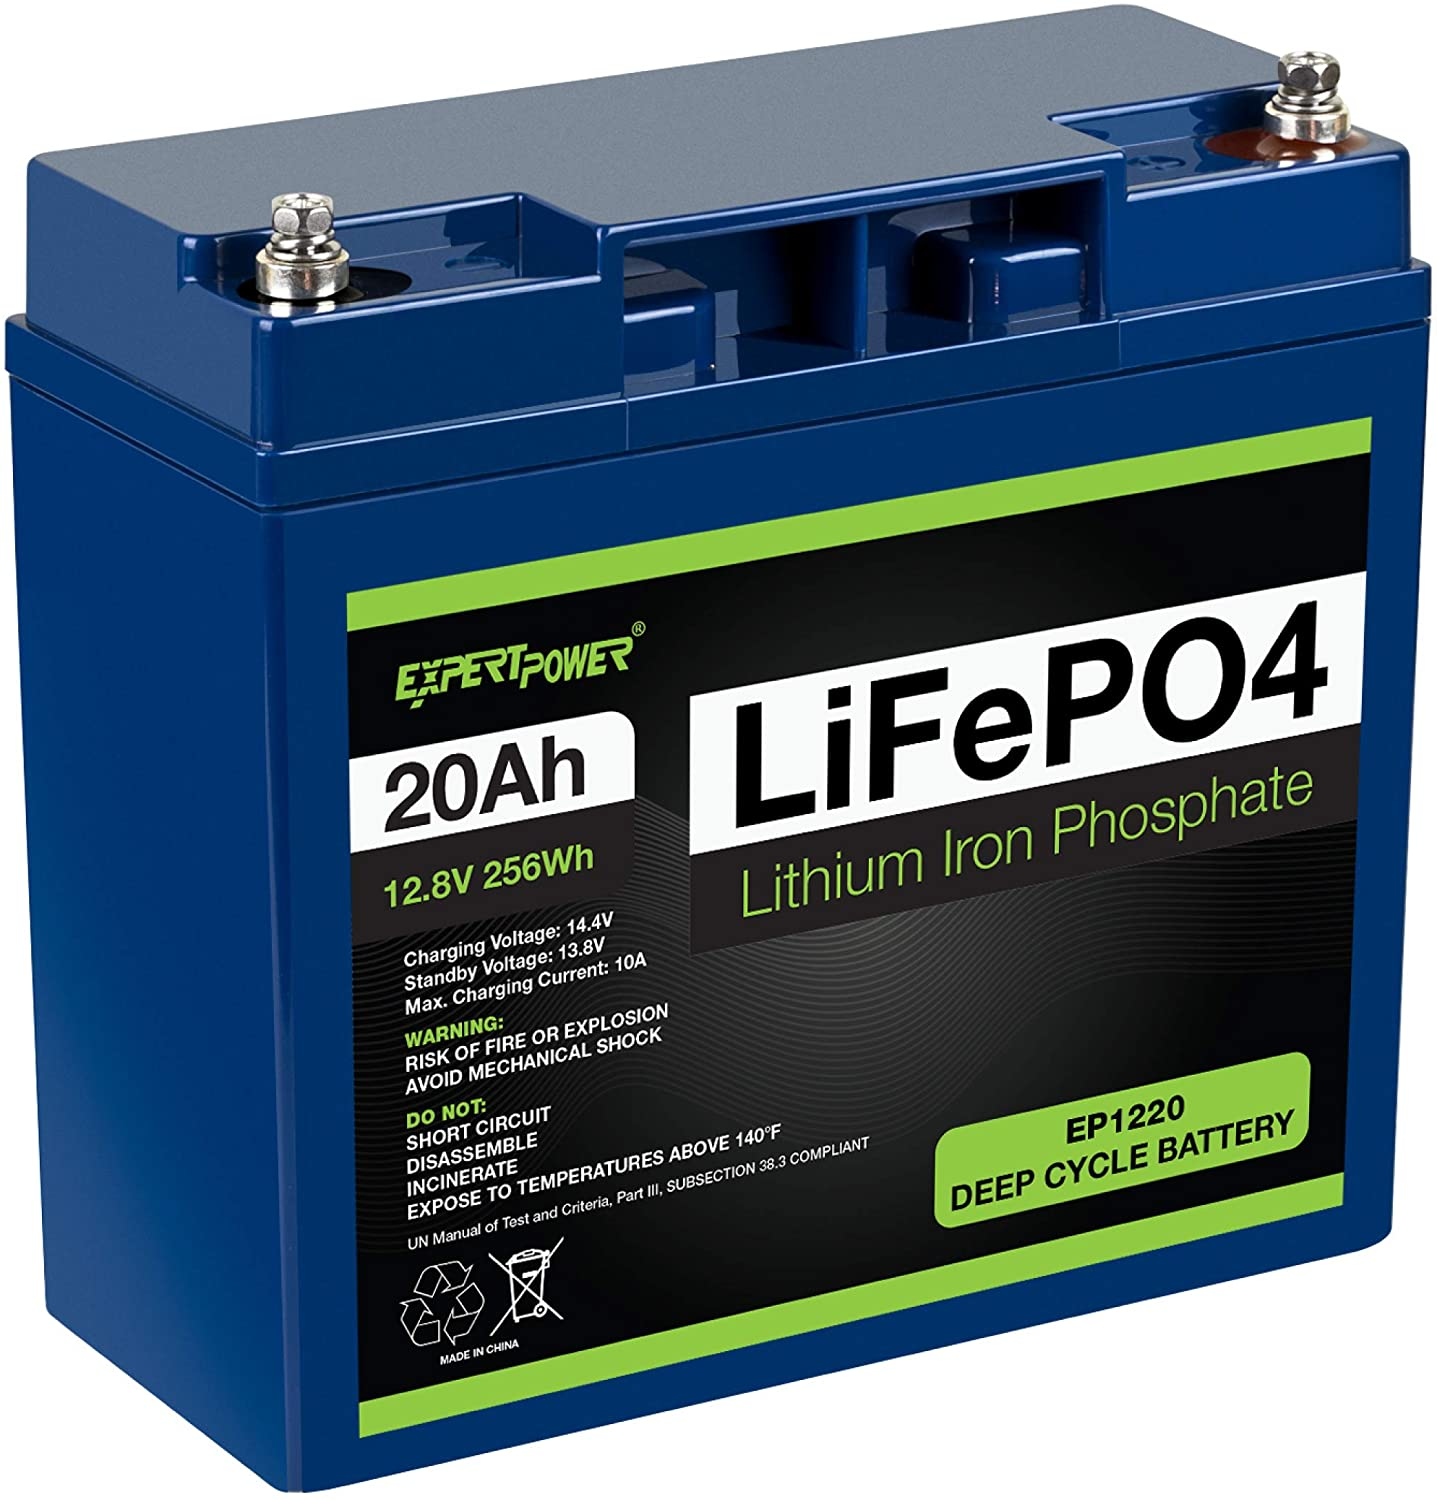 Gel and Li-Mn Battery ect Ampere Time Intelligent AC-DC Battery Charger Best Solution for Lithium Iron Phosphate LiFePO4 Lead-Acid AGM